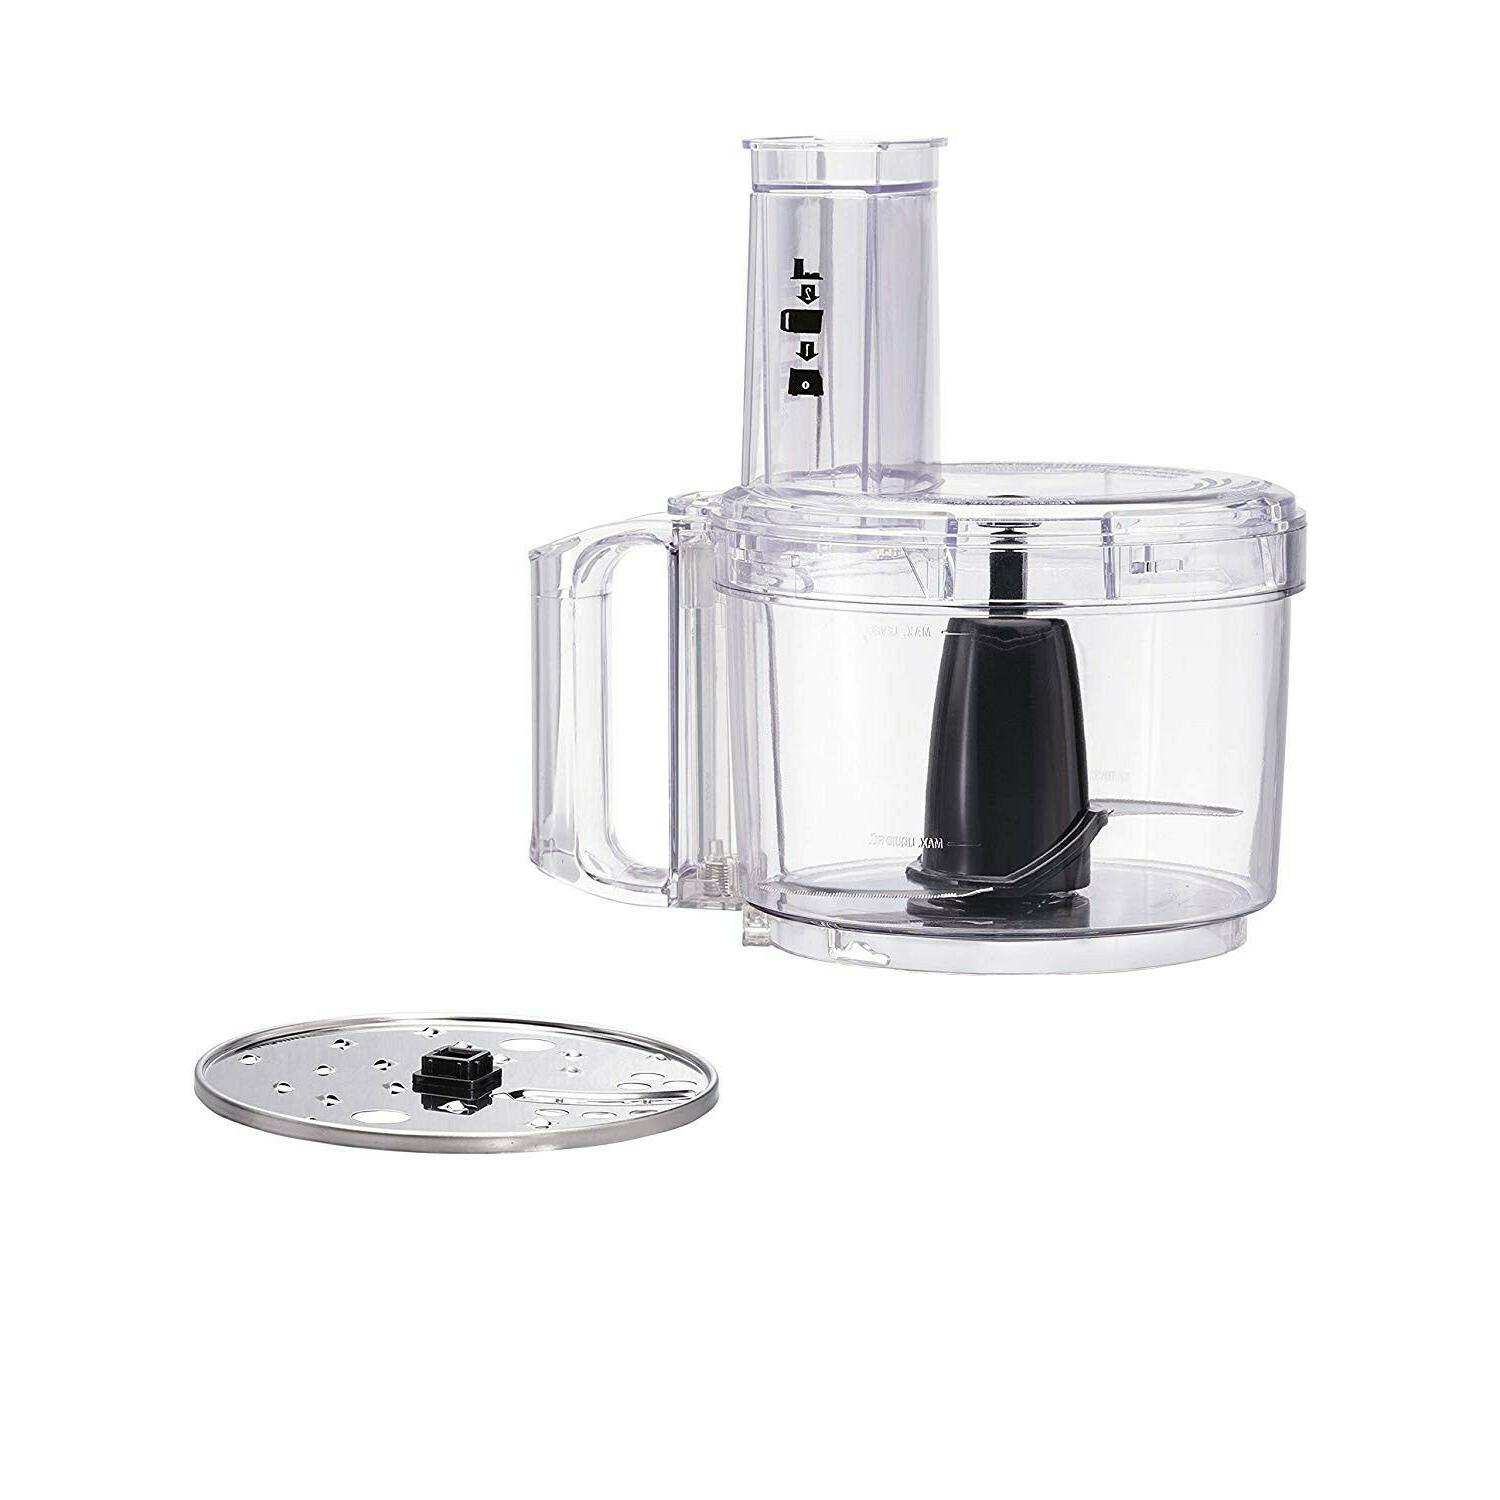 Hamilton Slicer Vegetable with Compact